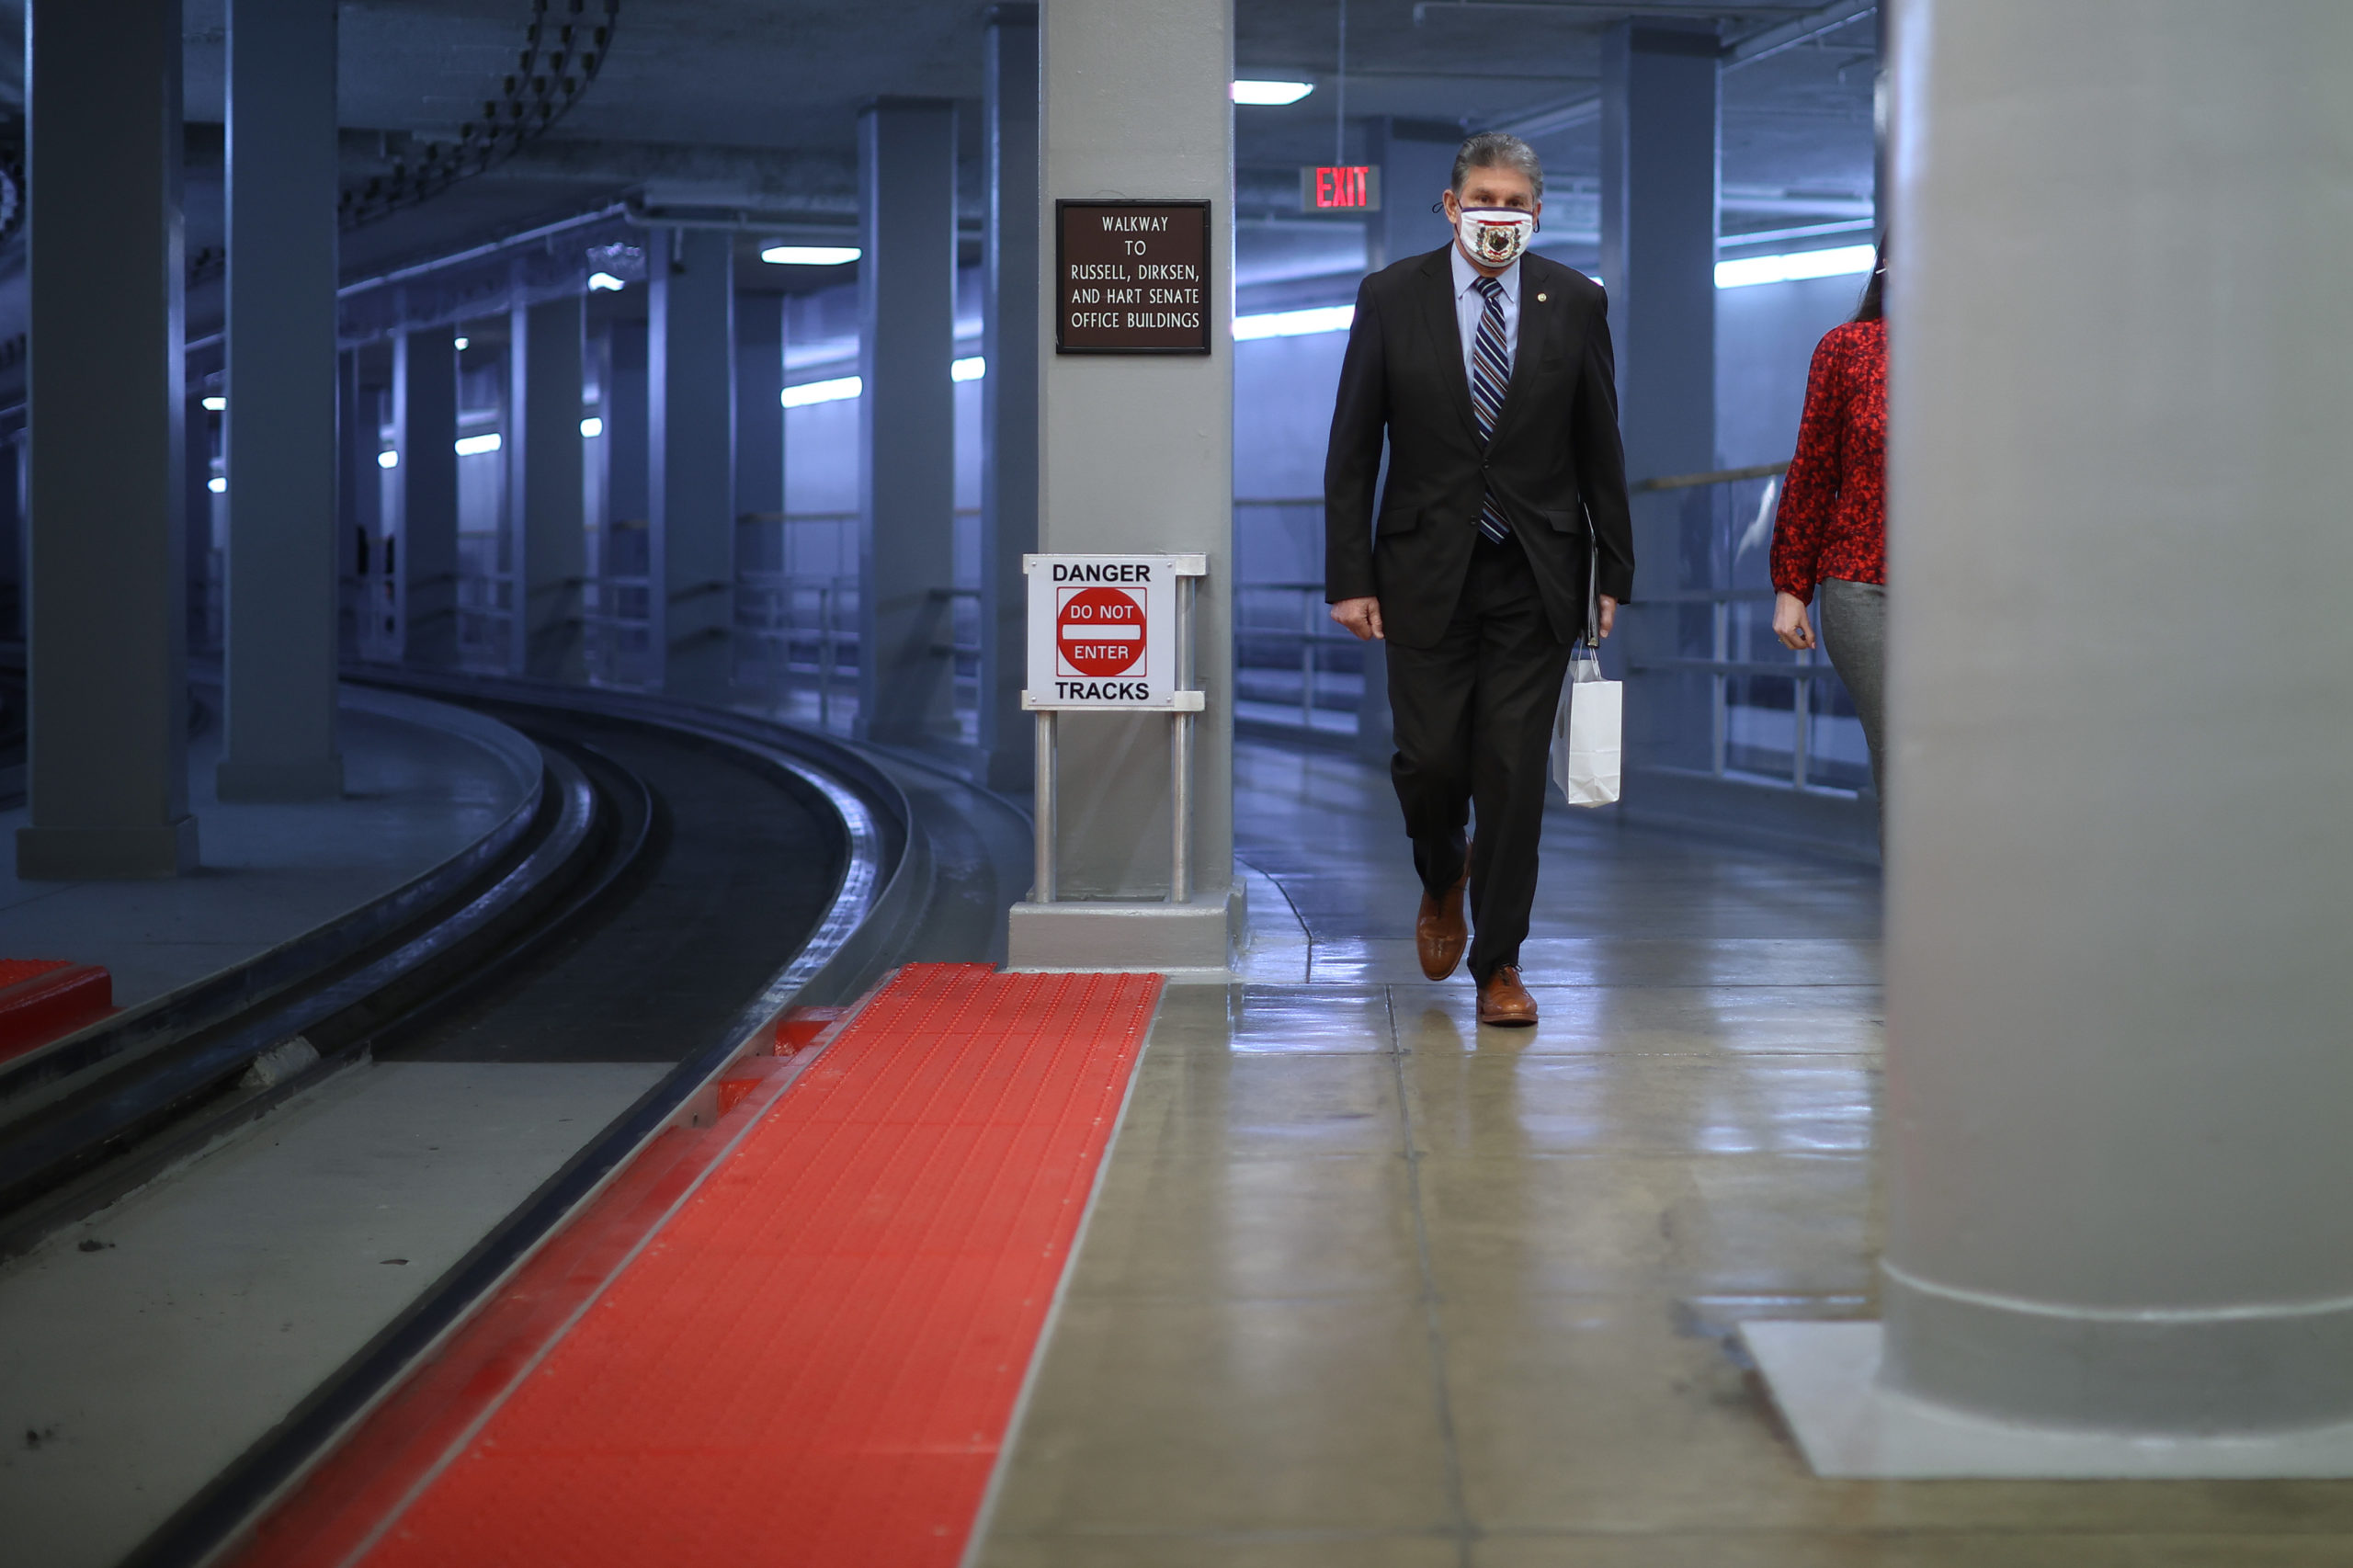 Sen. Joe Manchin walks through the subway tunnel on his way to the U.S. Capitol on the third day of former President Donald Trump's impeachment trial on February 11, 2021 in Washington, DC. (Chip Somodevilla/Getty Images)